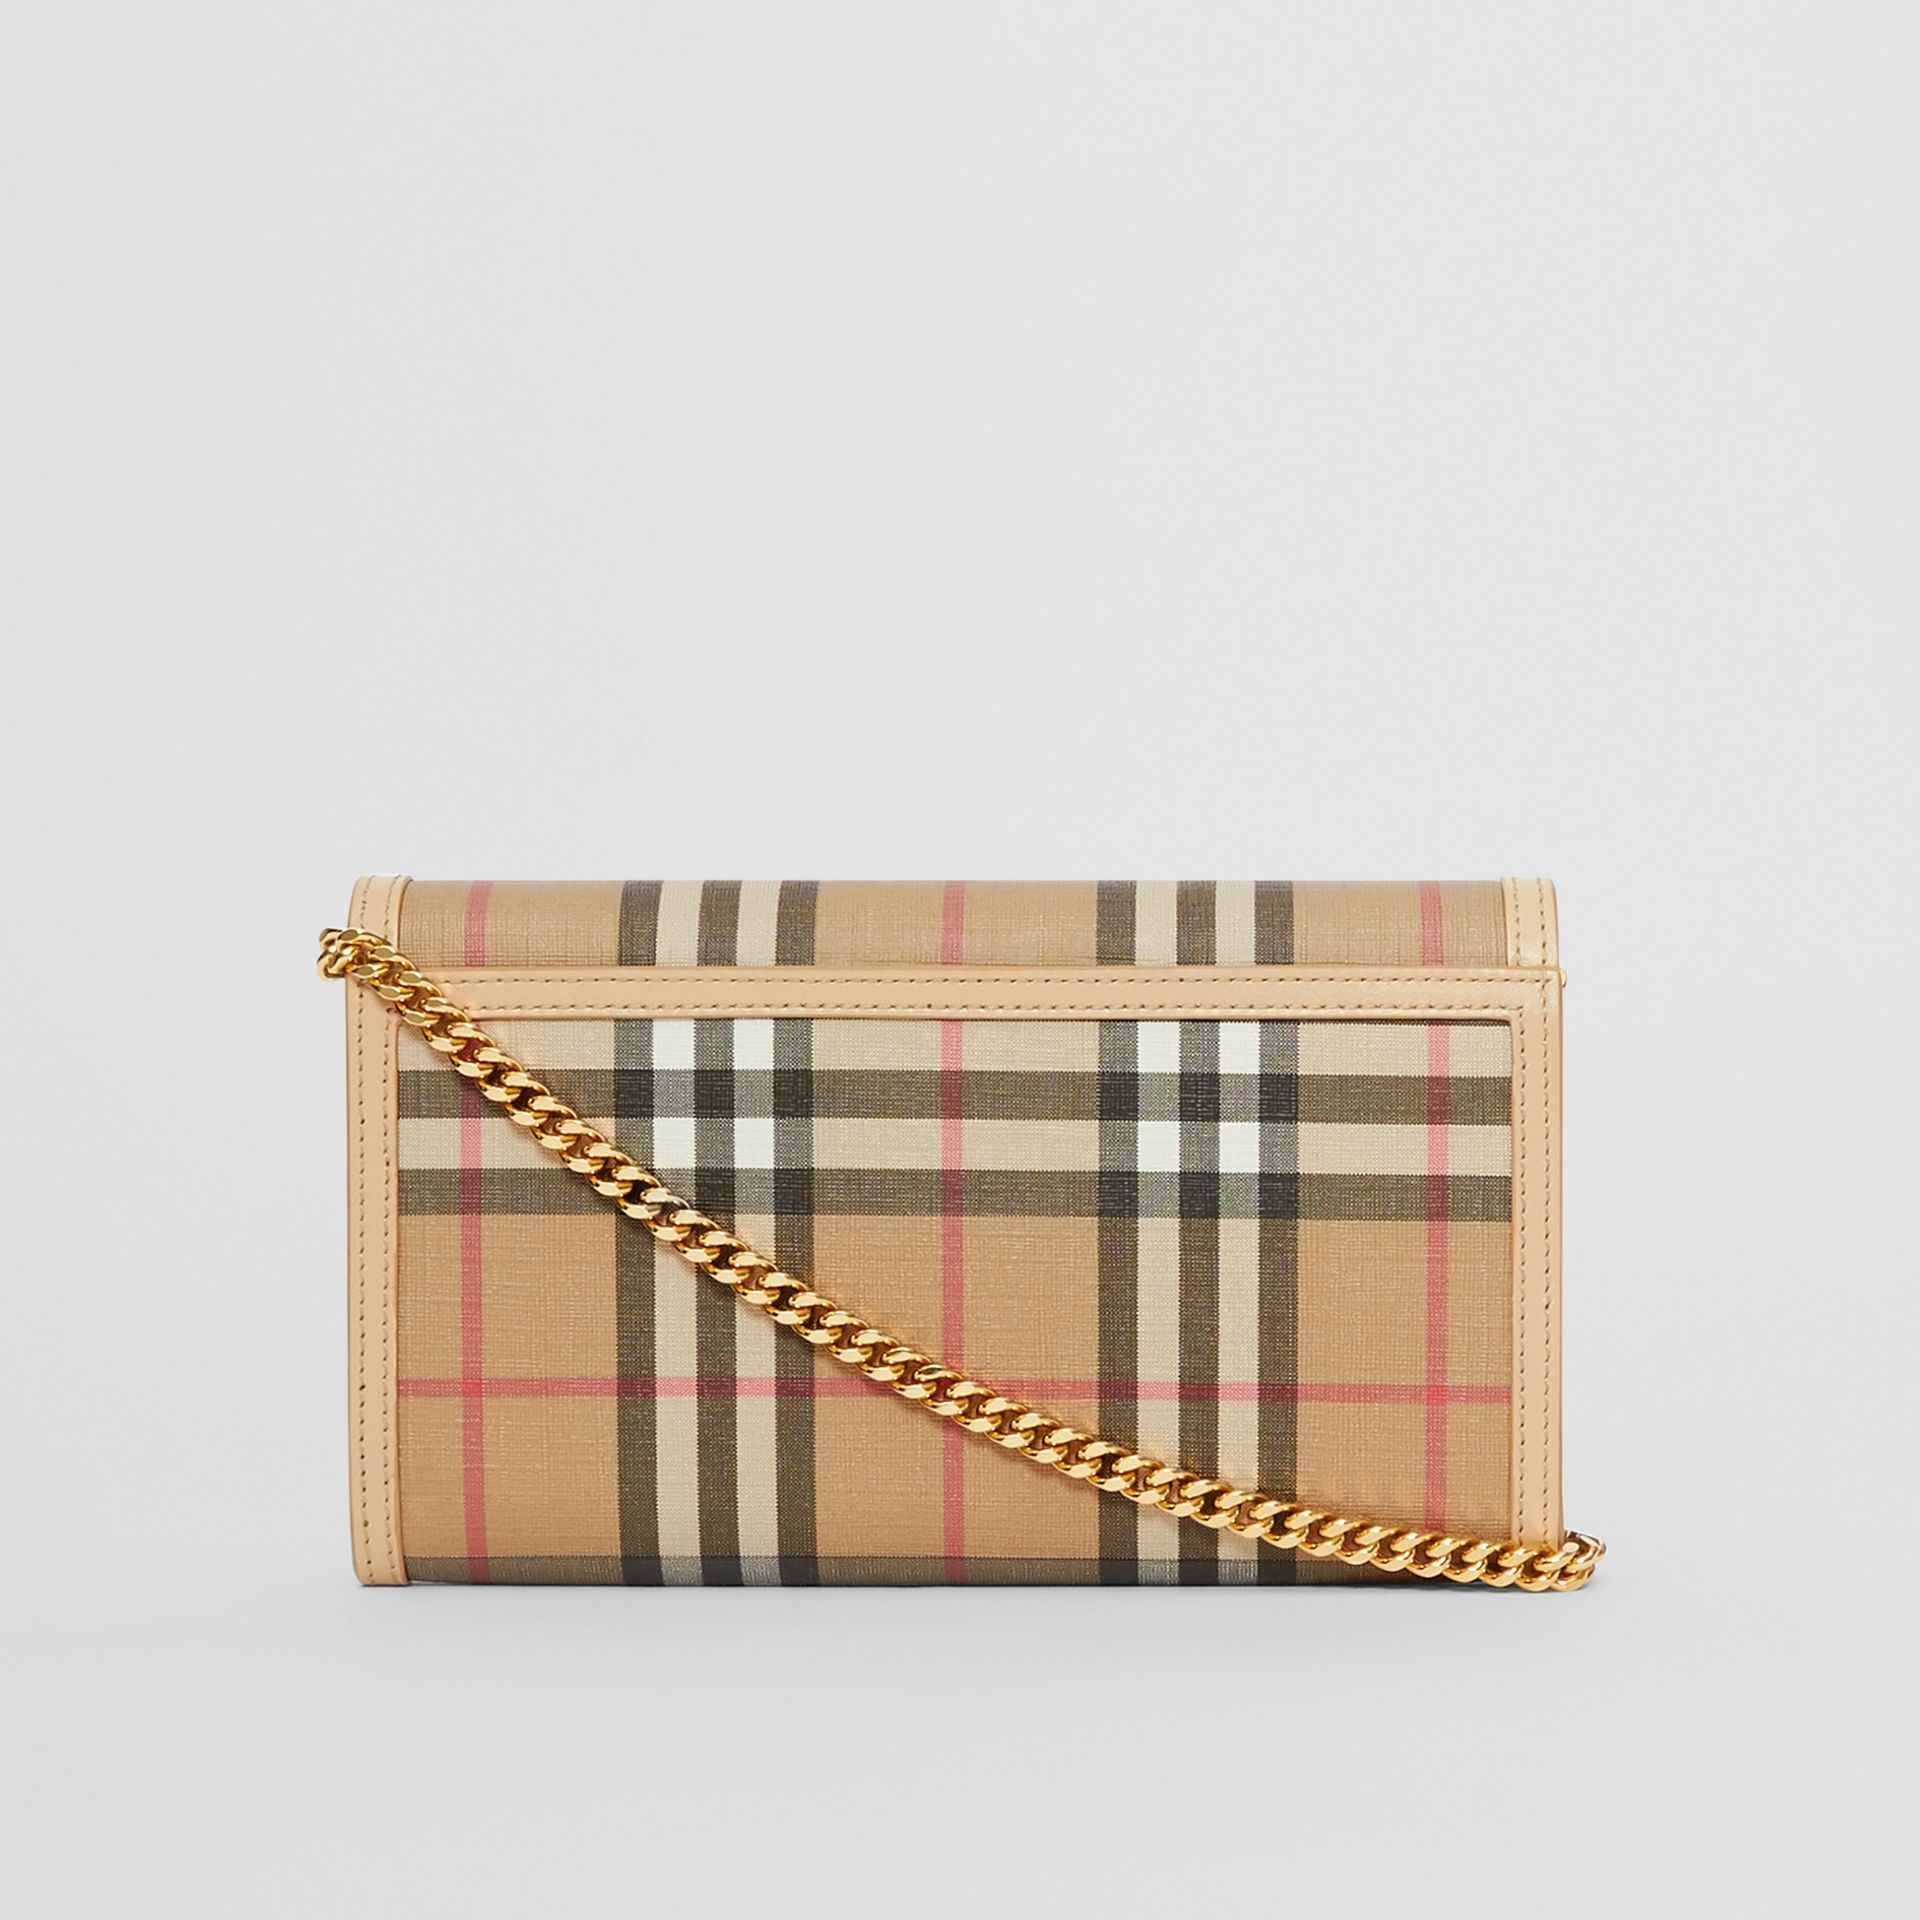 Vintage Check E-canvas Wallet with Detachable Strap in Beige - Women | Burberry Hong Kong S.A.R - gallery image 7